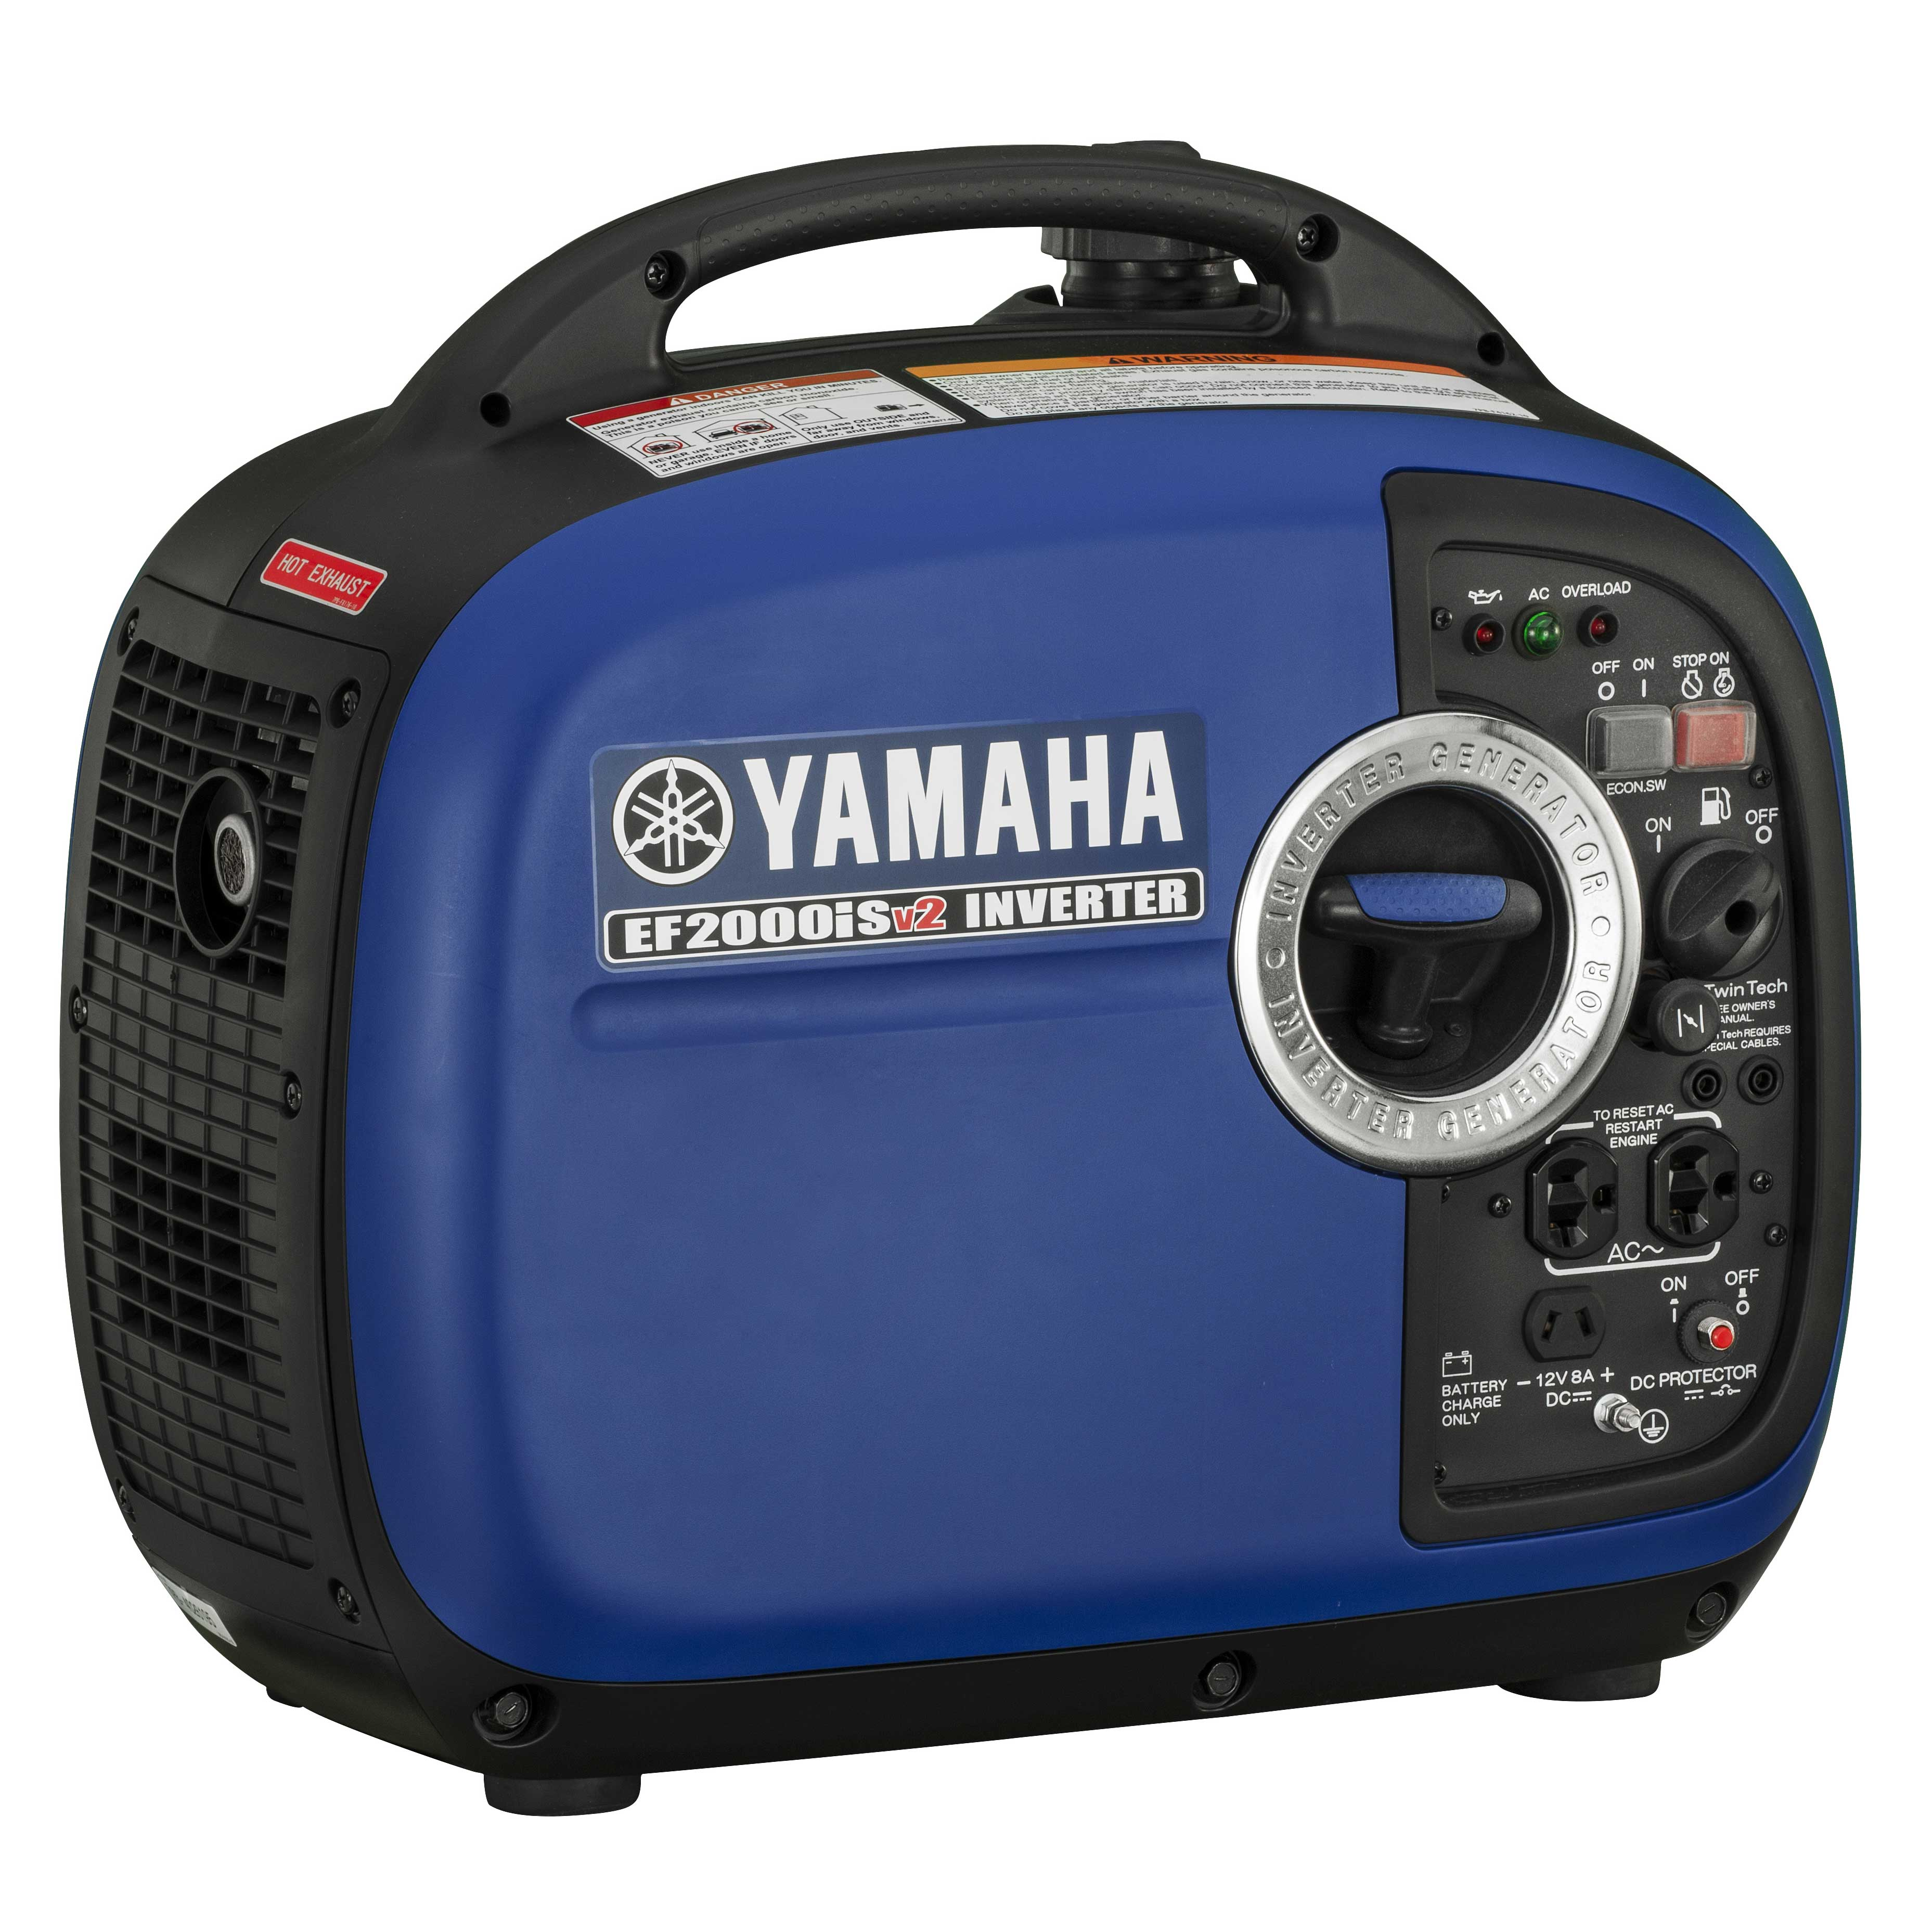 Yamaha Inverter Vs Honda